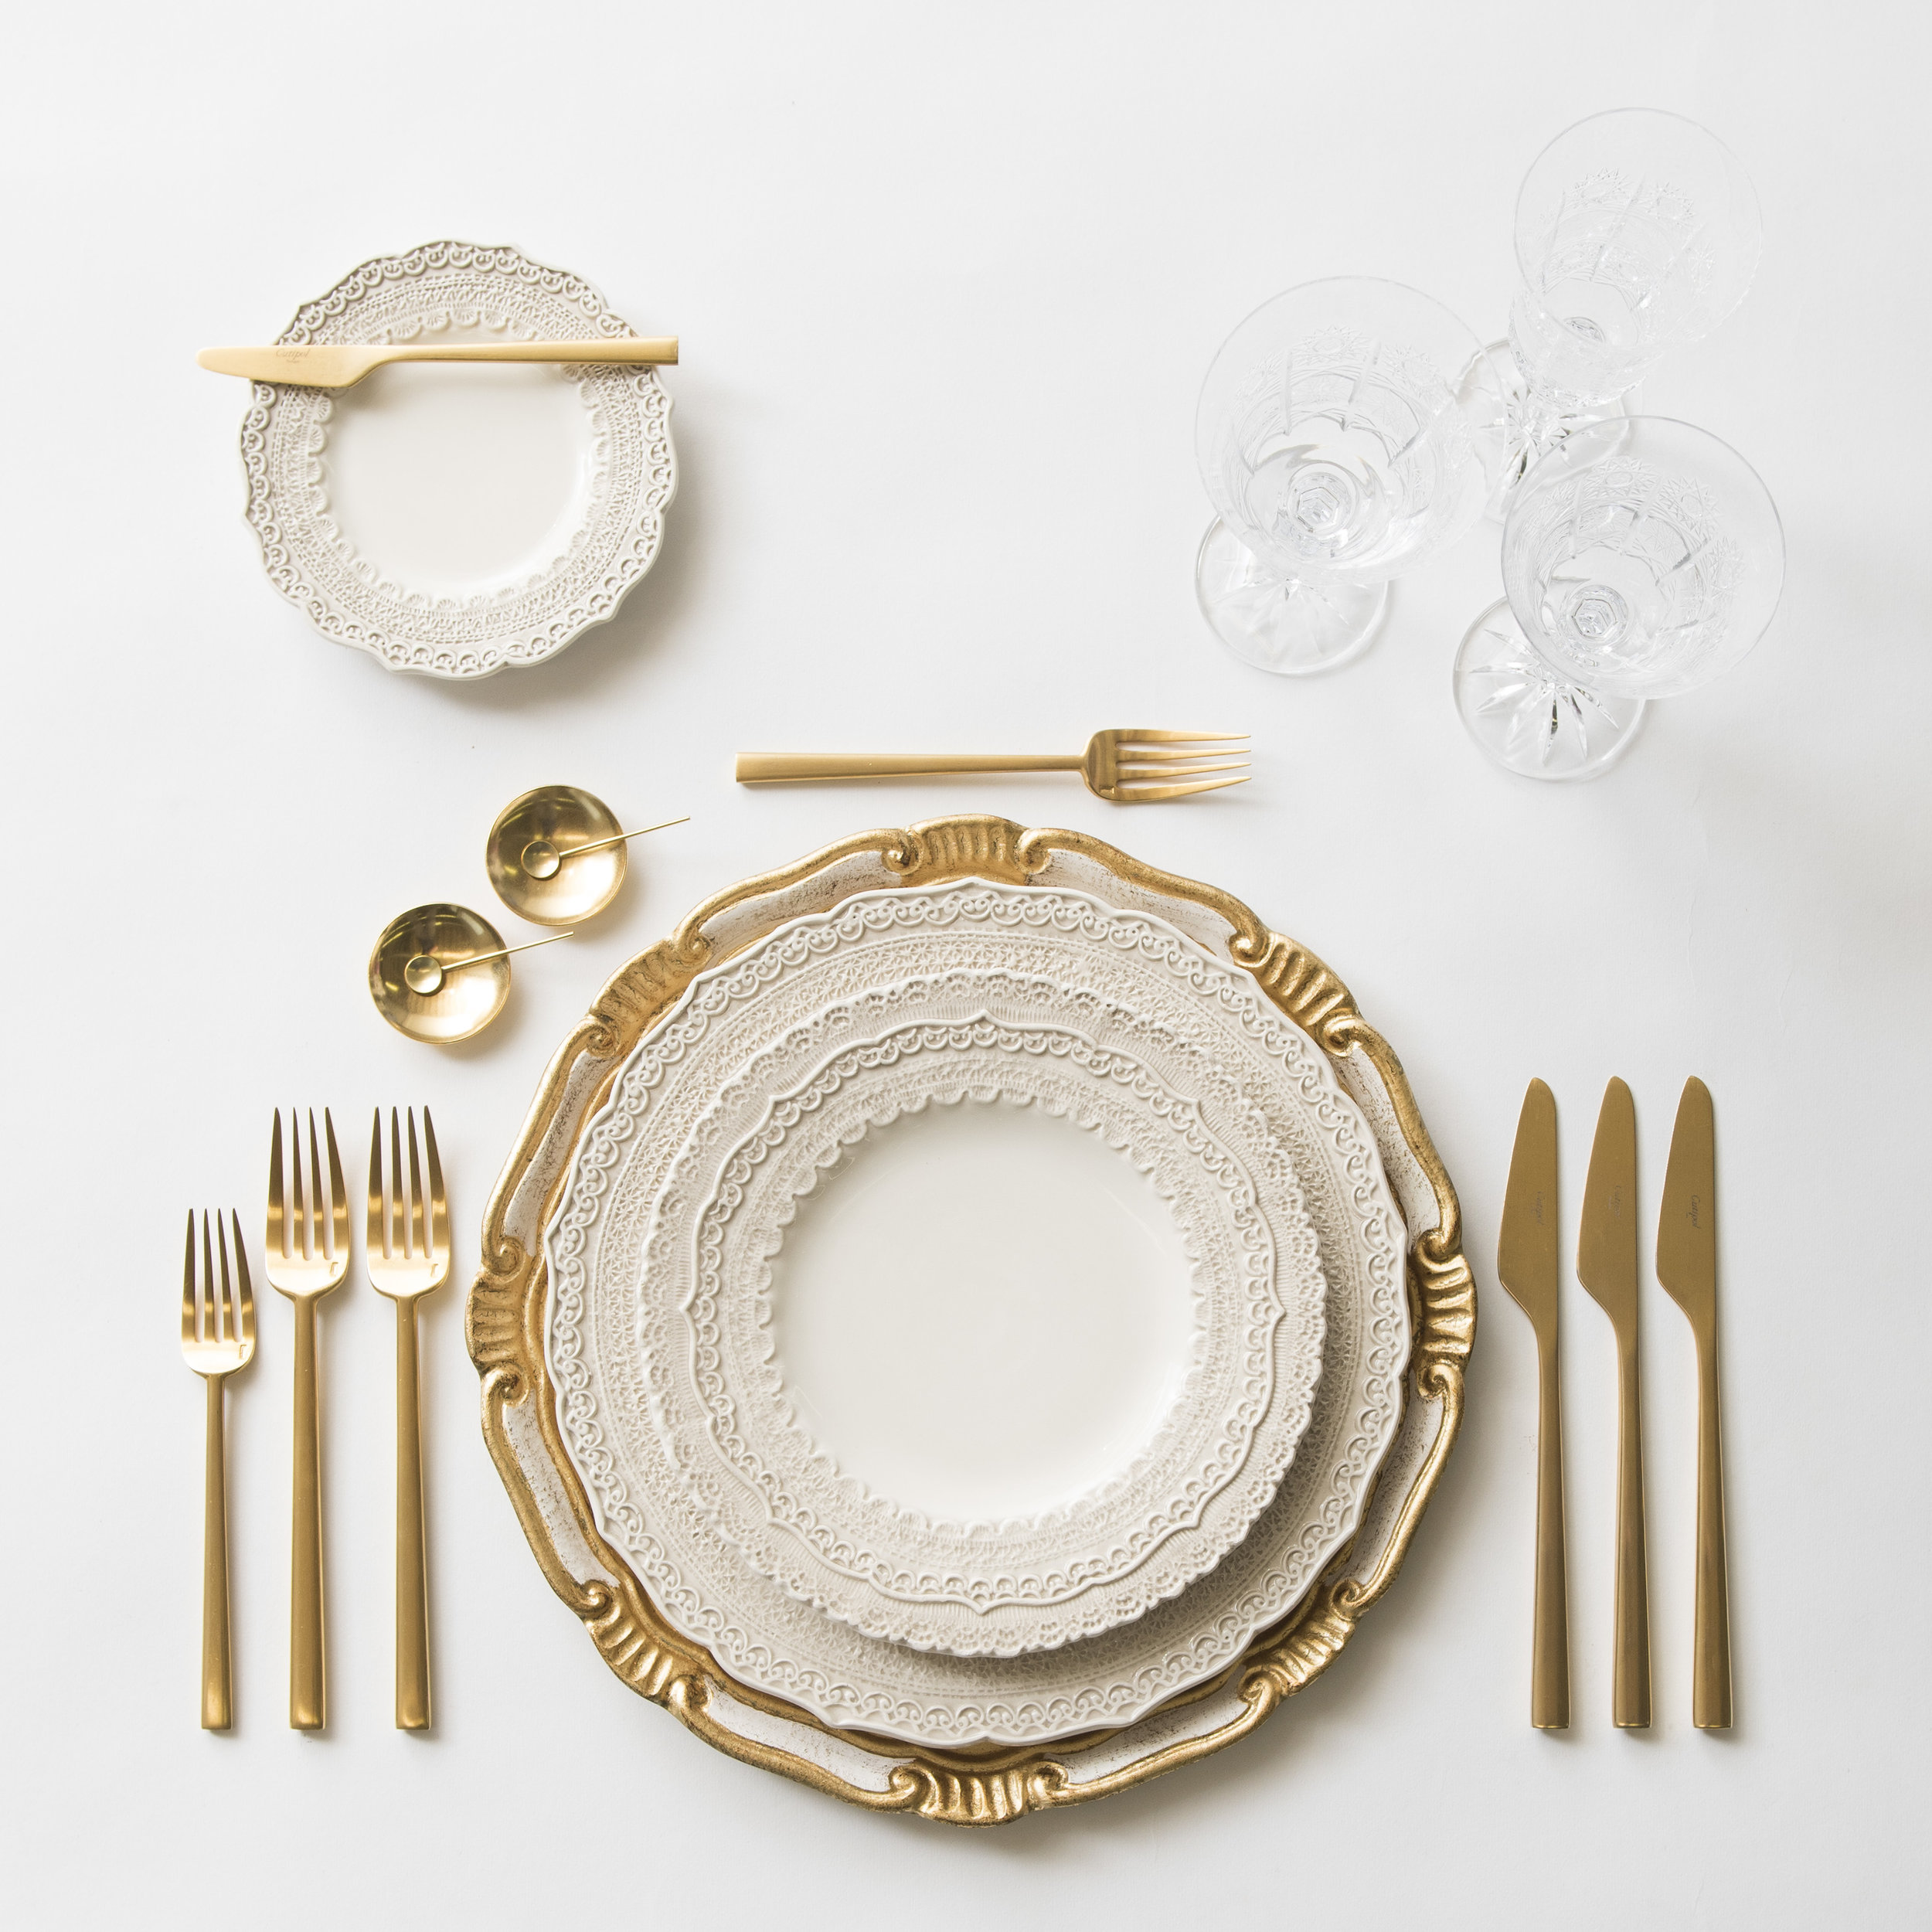 RENT: Florentine Chargers in White/Gold + Lace Dinnerware in White + Rondo Flatware in Brushed 24k Gold + Czech Crystal Stemware + 14k Gold Salt Cellars + Tiny Gold Spoons  SHOP:Florentine Chargers in White/Gold + Rondo Flatware in Brushed 24k Gold + 14k Gold Salt Cellars + Tiny Gold Spoons